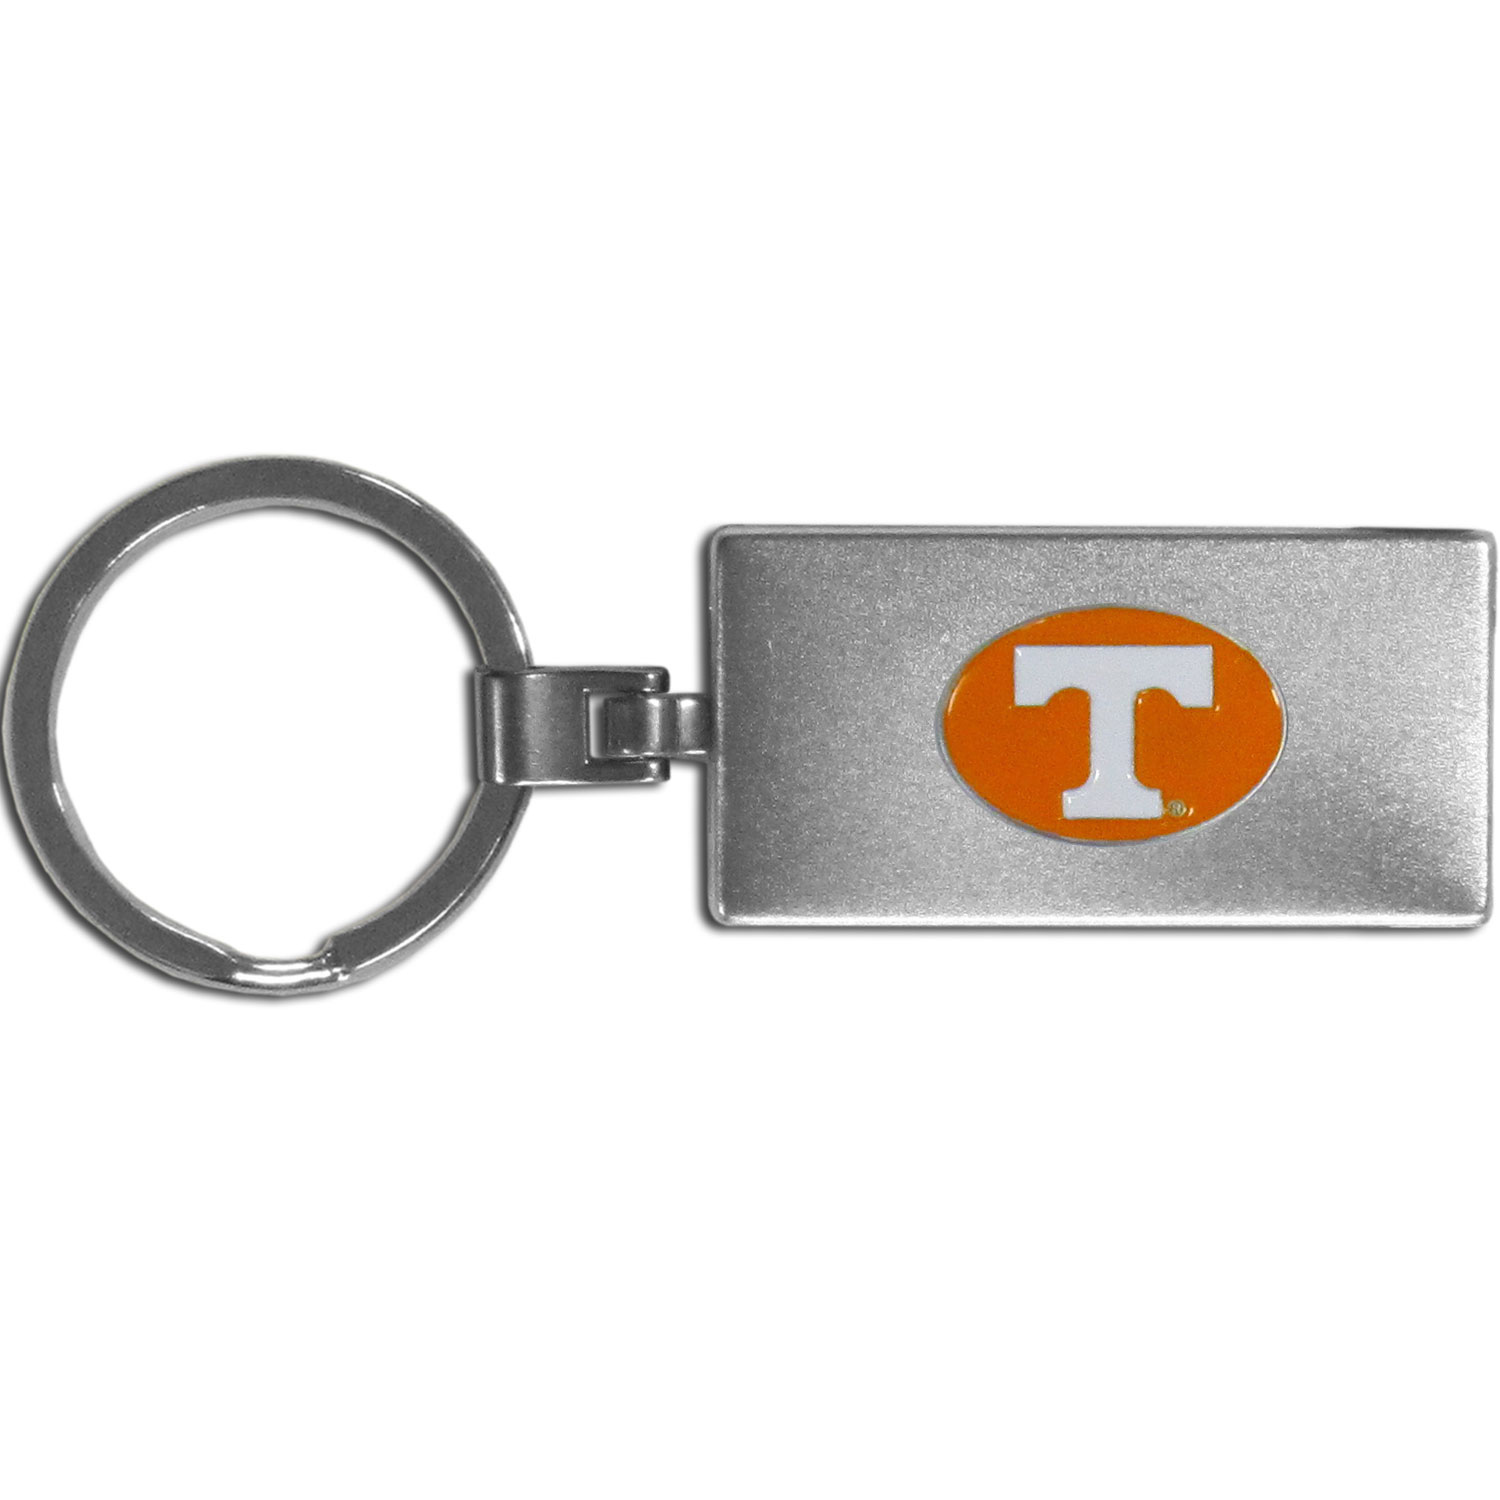 Tennessee Volunteers Multi-tool Key Chain - Be the hero at the tailgate, camping, or on a Friday night with your Tennessee Volunteers Multi-Tool Keychain which comes complete with bottle opener, scissors, knife, nail file and screw driver. Be it opening a package or a beverage Siskiyou's Multi-Tool Keychain goes wherever your keys do. The keychain hangs at 4 inches long when closed.